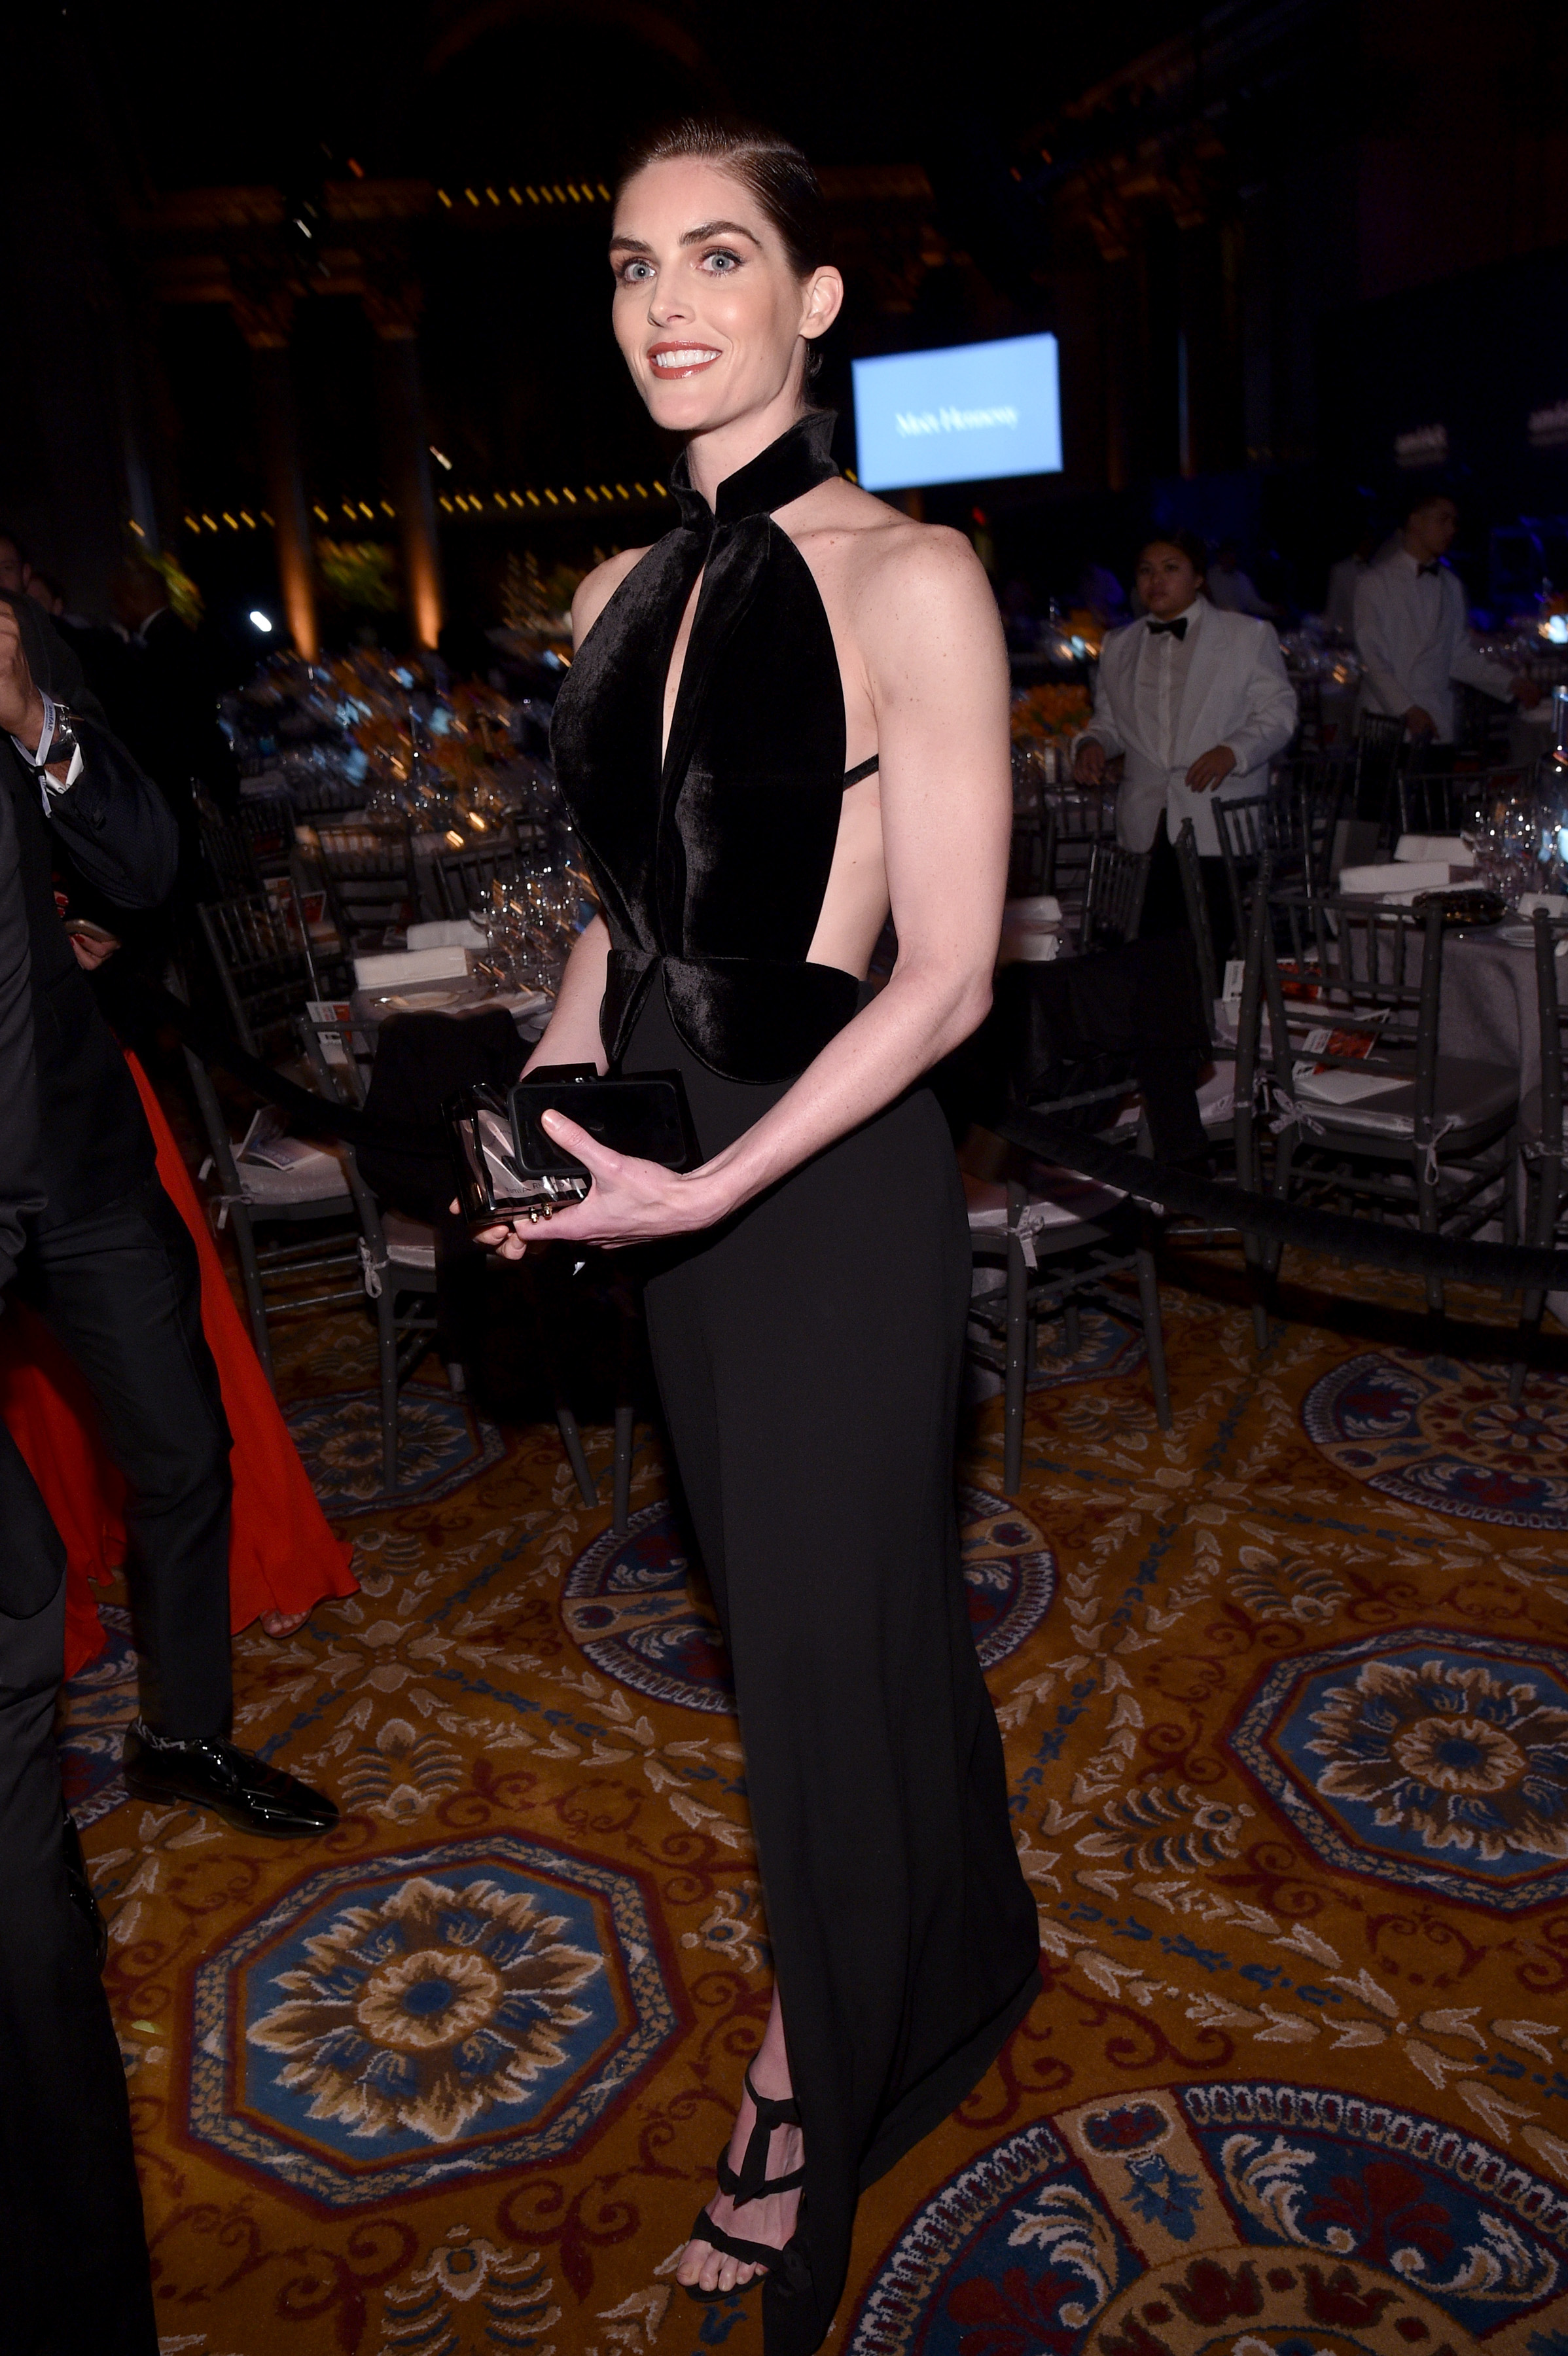 NEW YORK, NY - FEBRUARY 08:  Model Hilary Rhoda attends as Moet & Chandon Toasts to the amfAR New York Gala At Cipriani Wall Street at Cipriani Wall Street on February 8, 2017 in New York City.  (Photo by Bryan Bedder/Getty Images for Moet & Chandon)